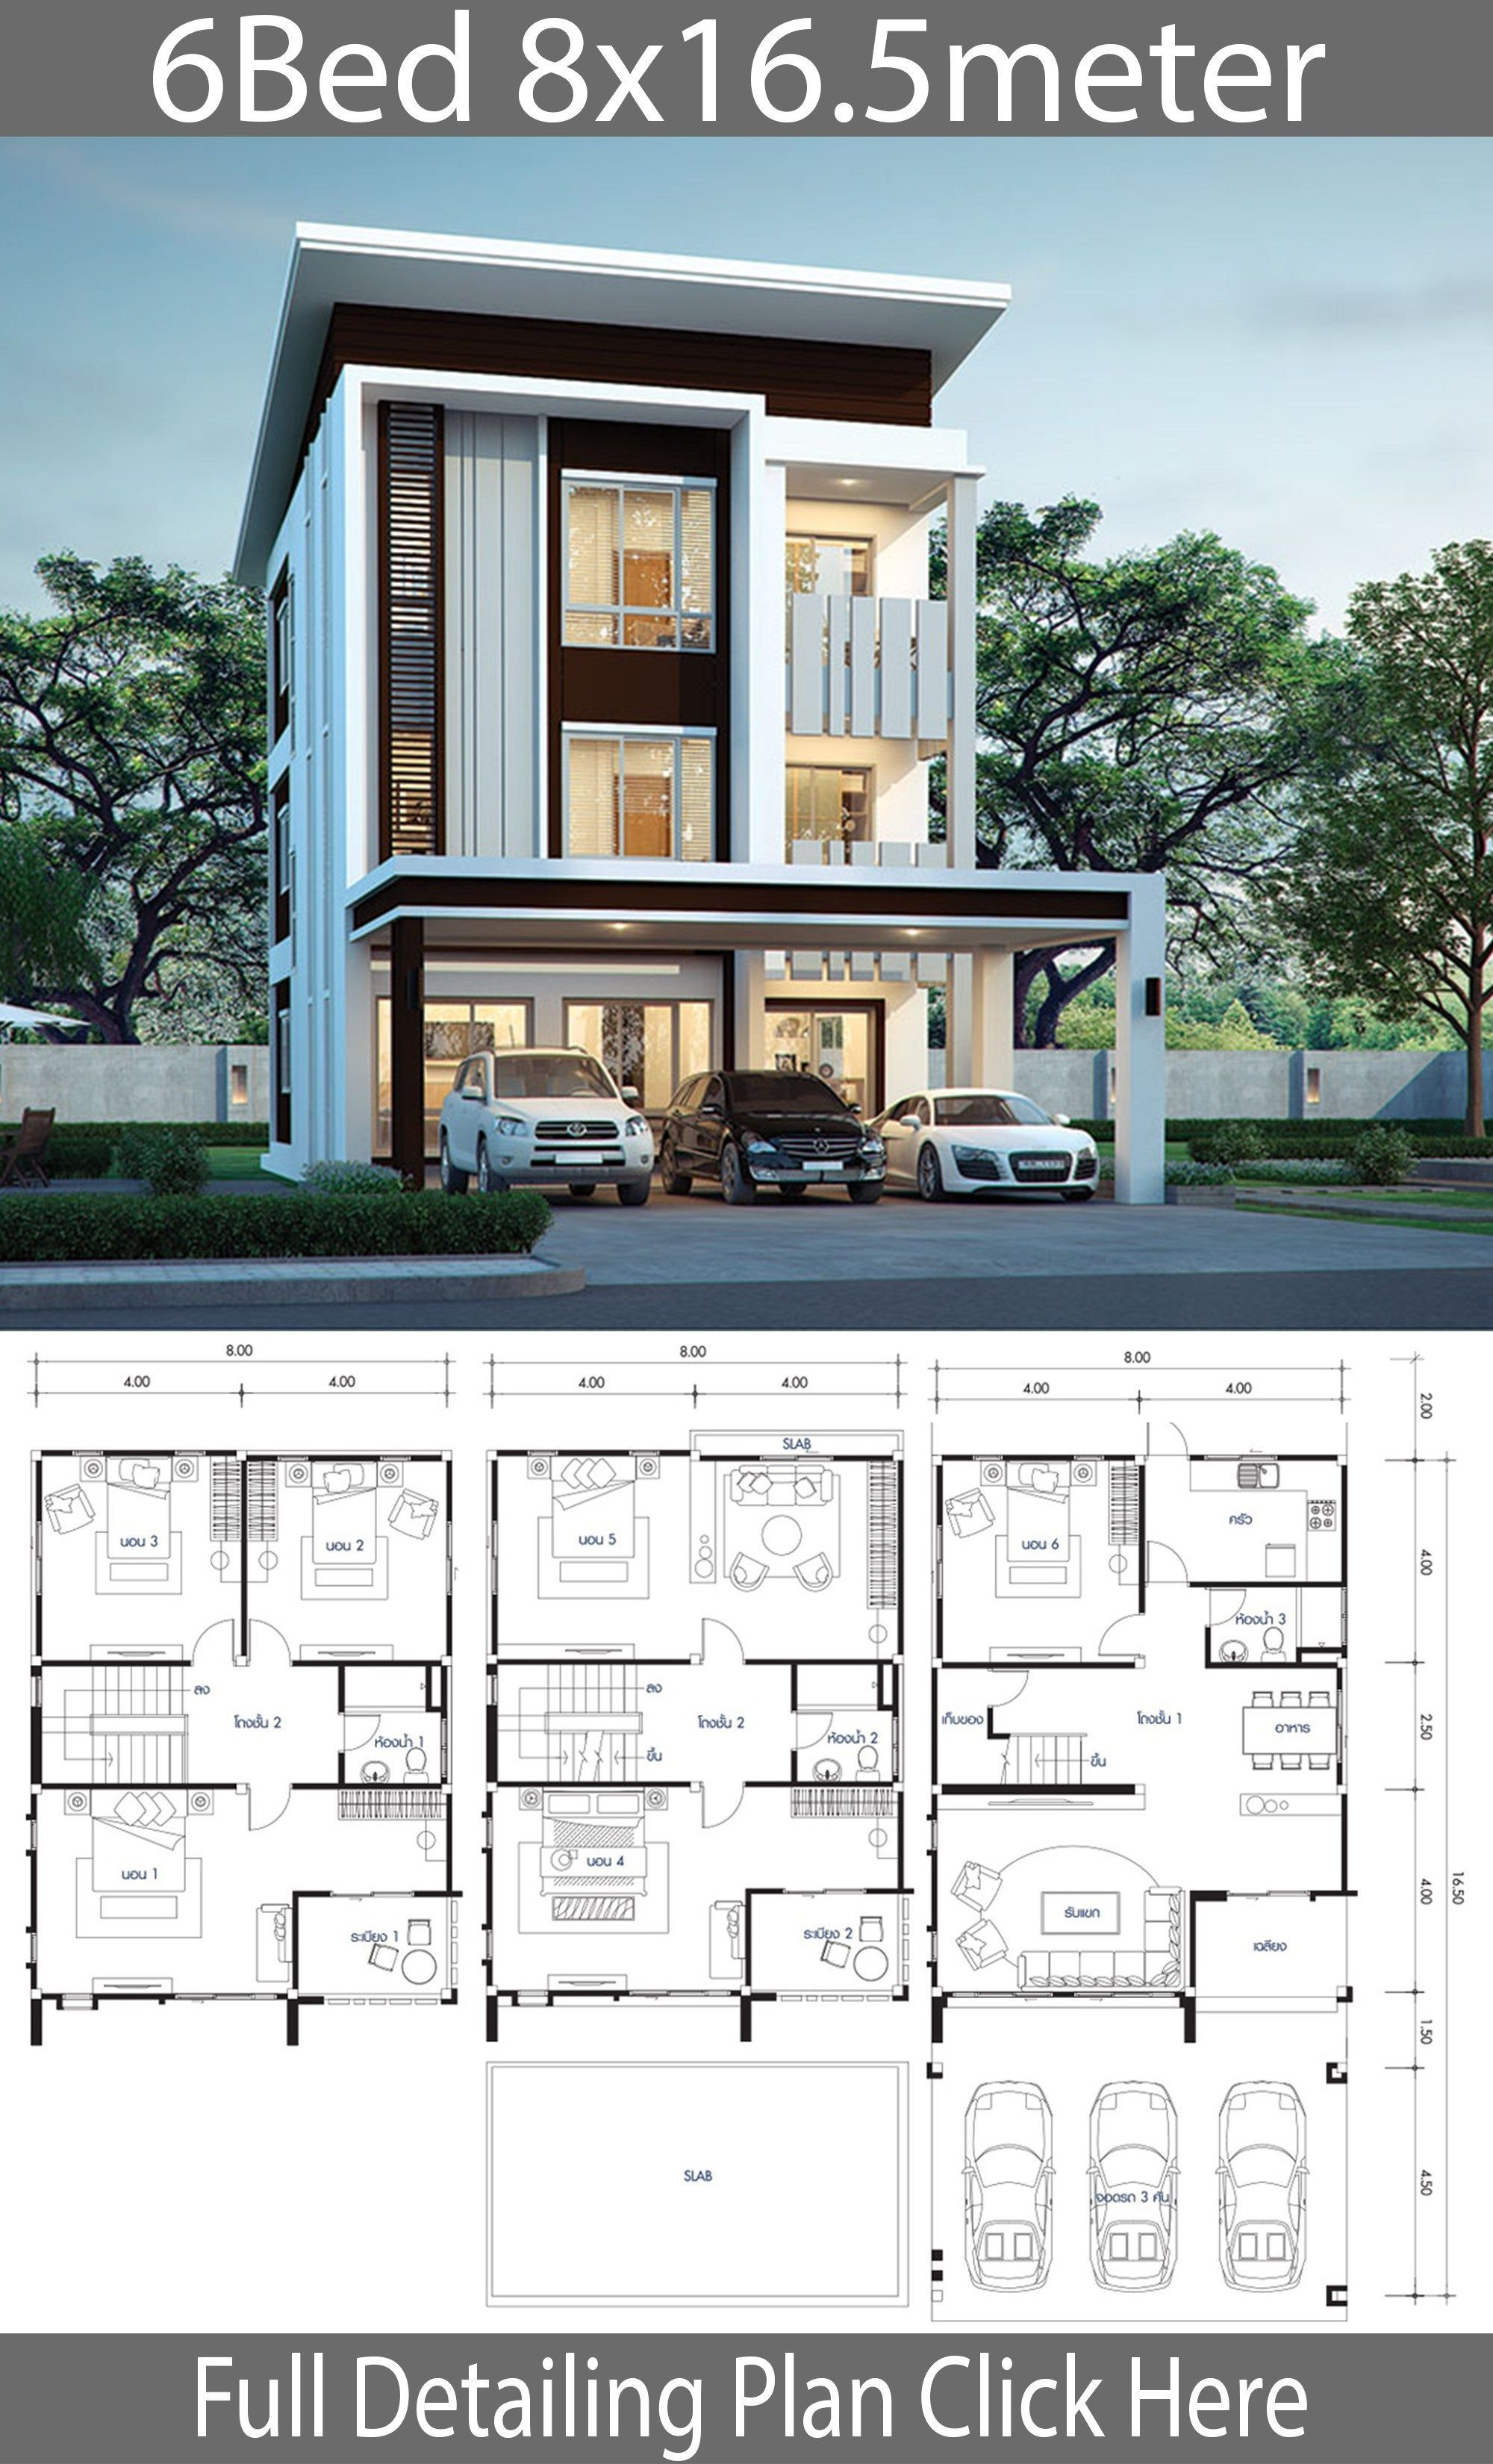 House Design Plan 8x16 5m With 6 Bedrooms Home Design With Plan Luxuryhouseplans6bedrooms House Construction Plan Duplex House Design Modern House Plans